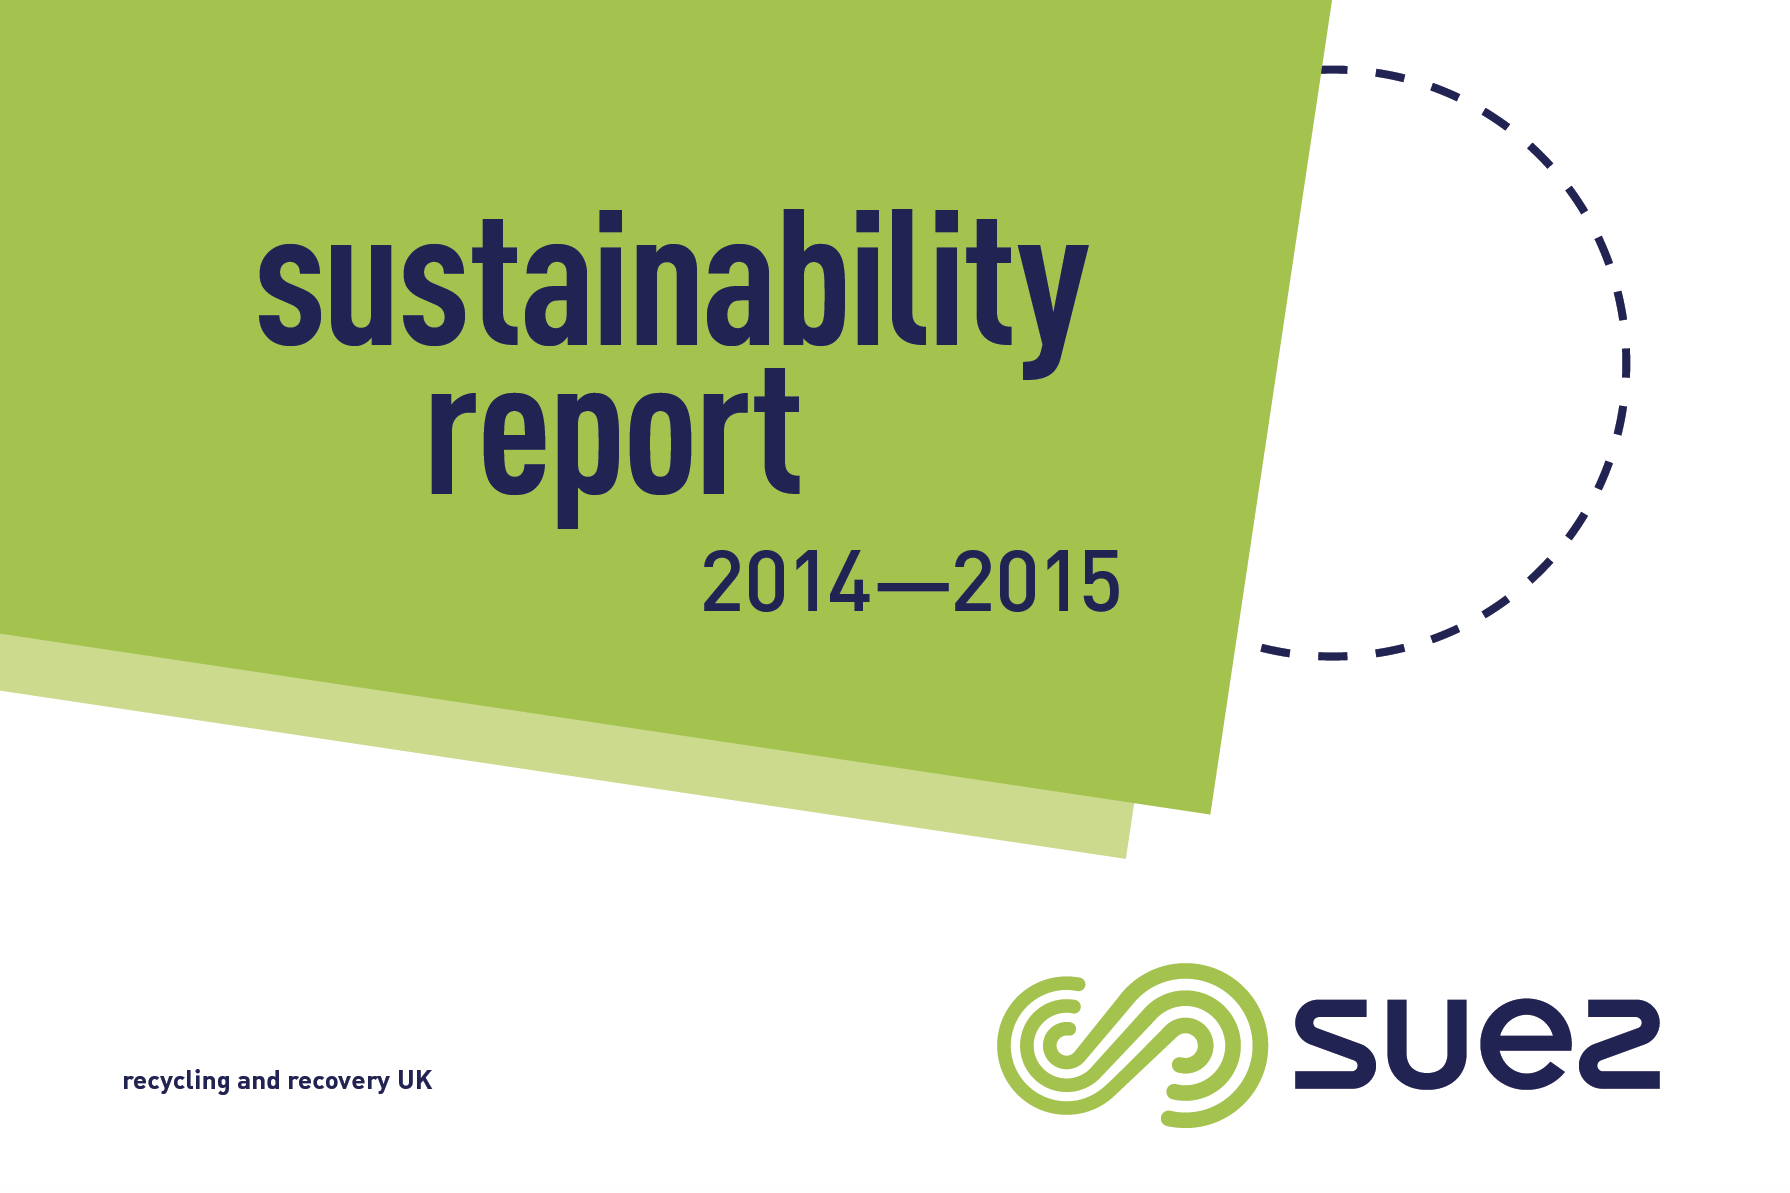 Sustainability report 2014-2015